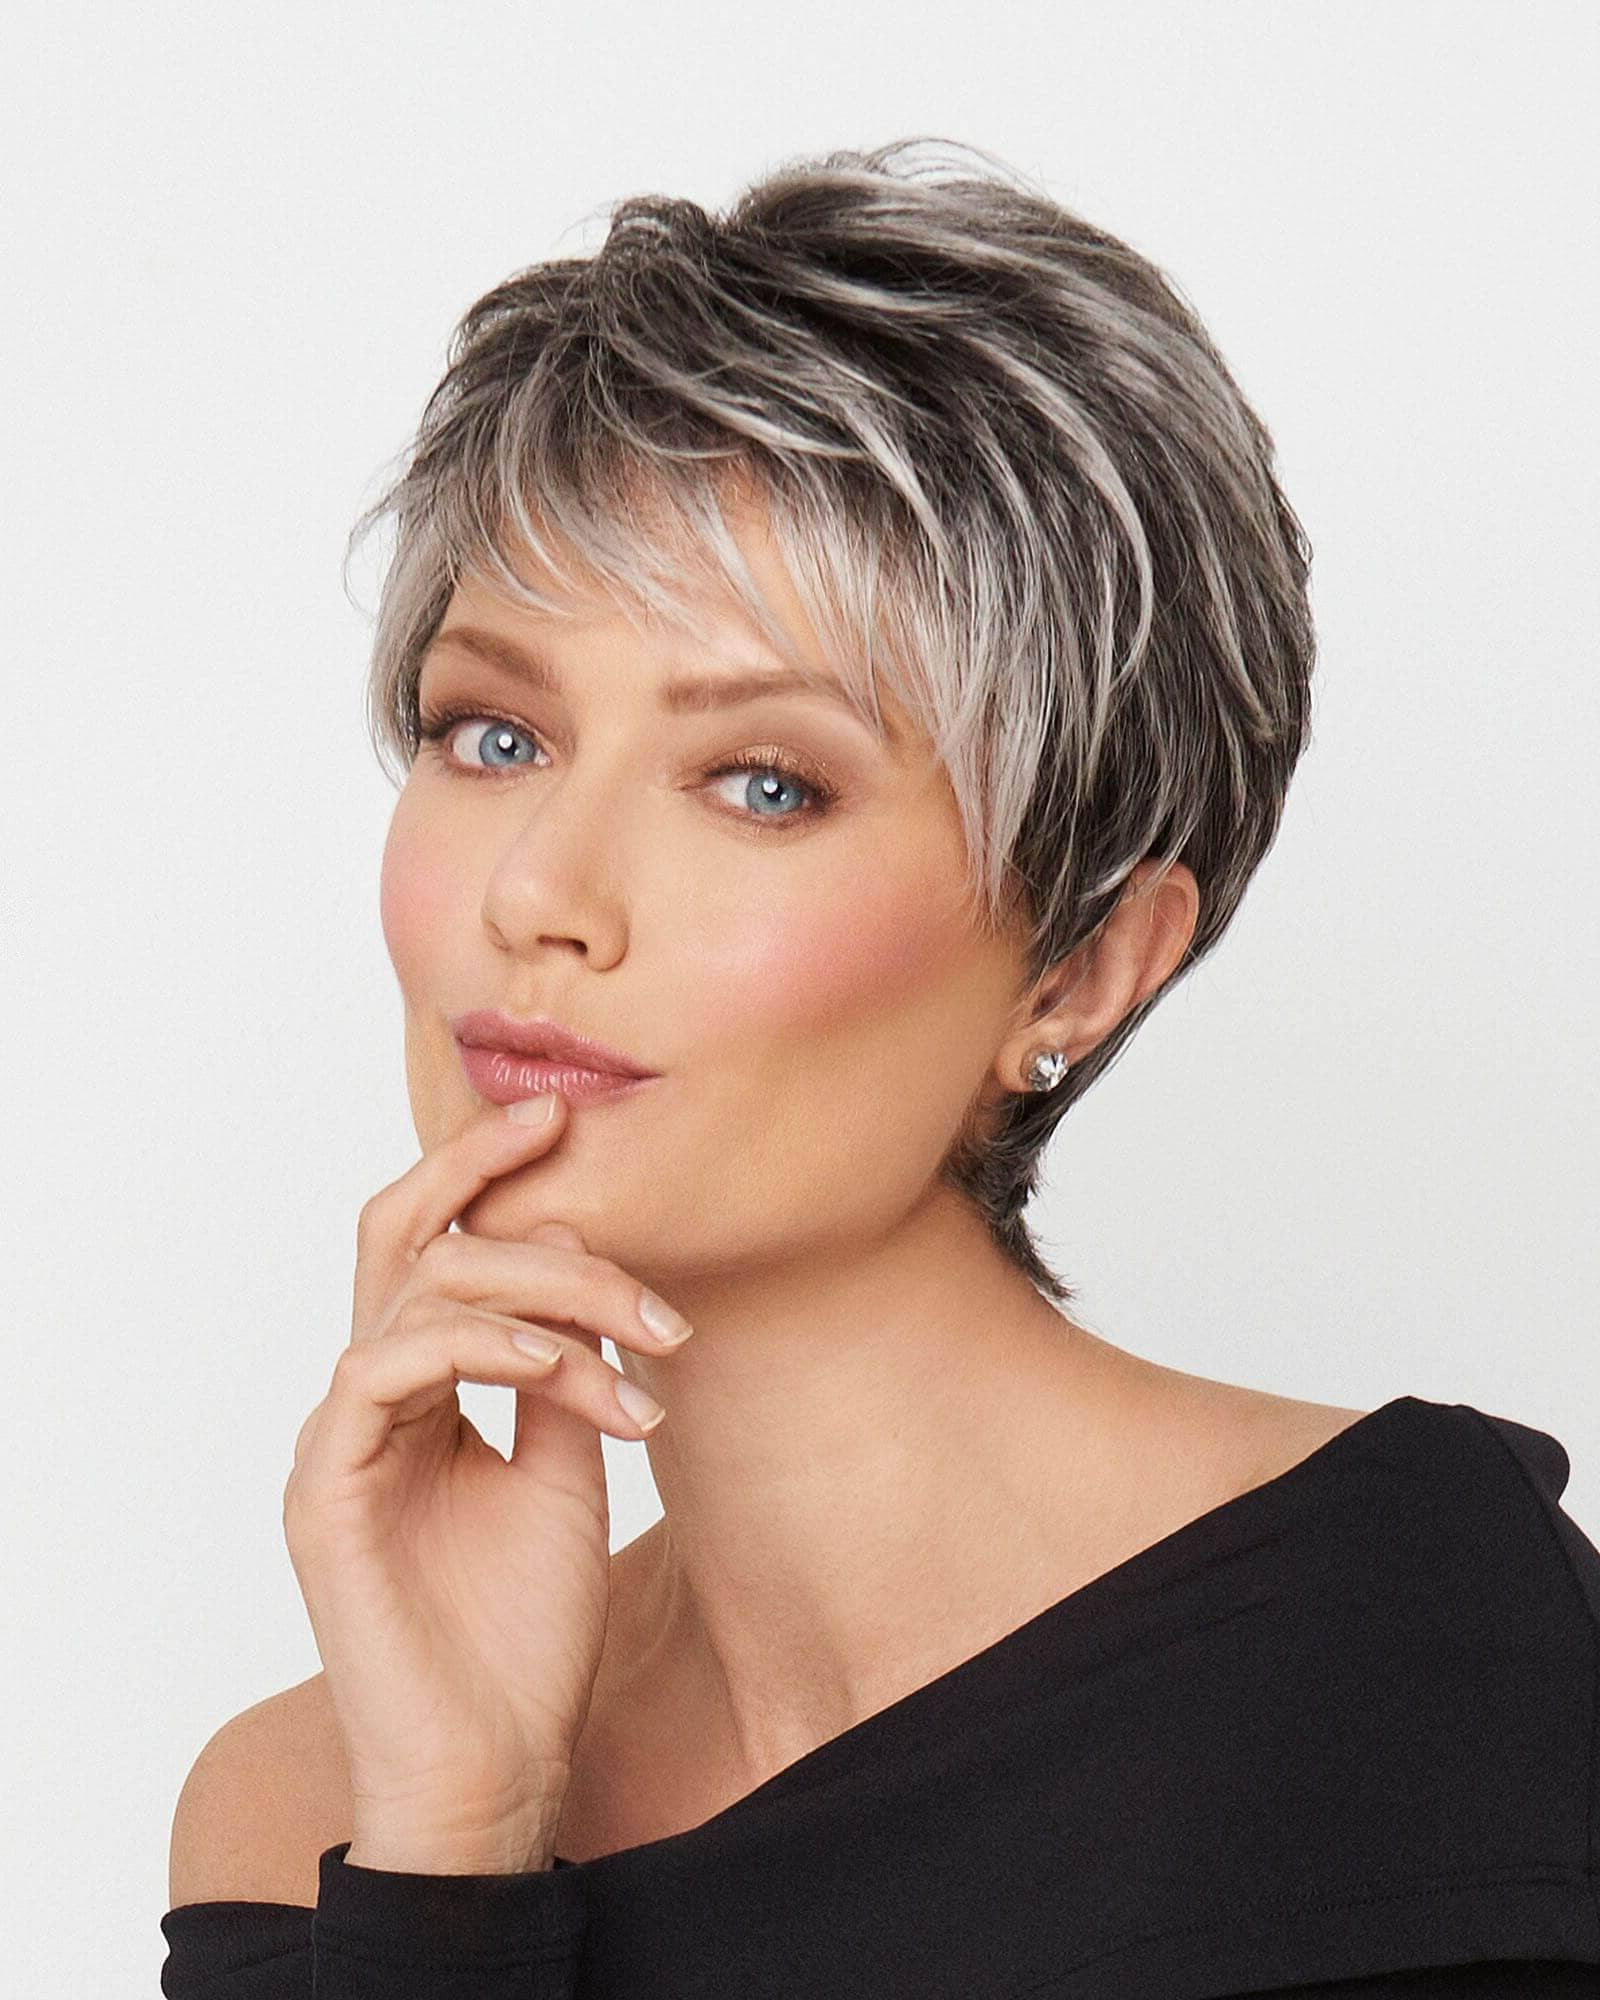 50 Pixie Haircuts You'll See Trending In 2019 Inside Pastel Pixie Haircuts With Curly Bangs (View 20 of 20)